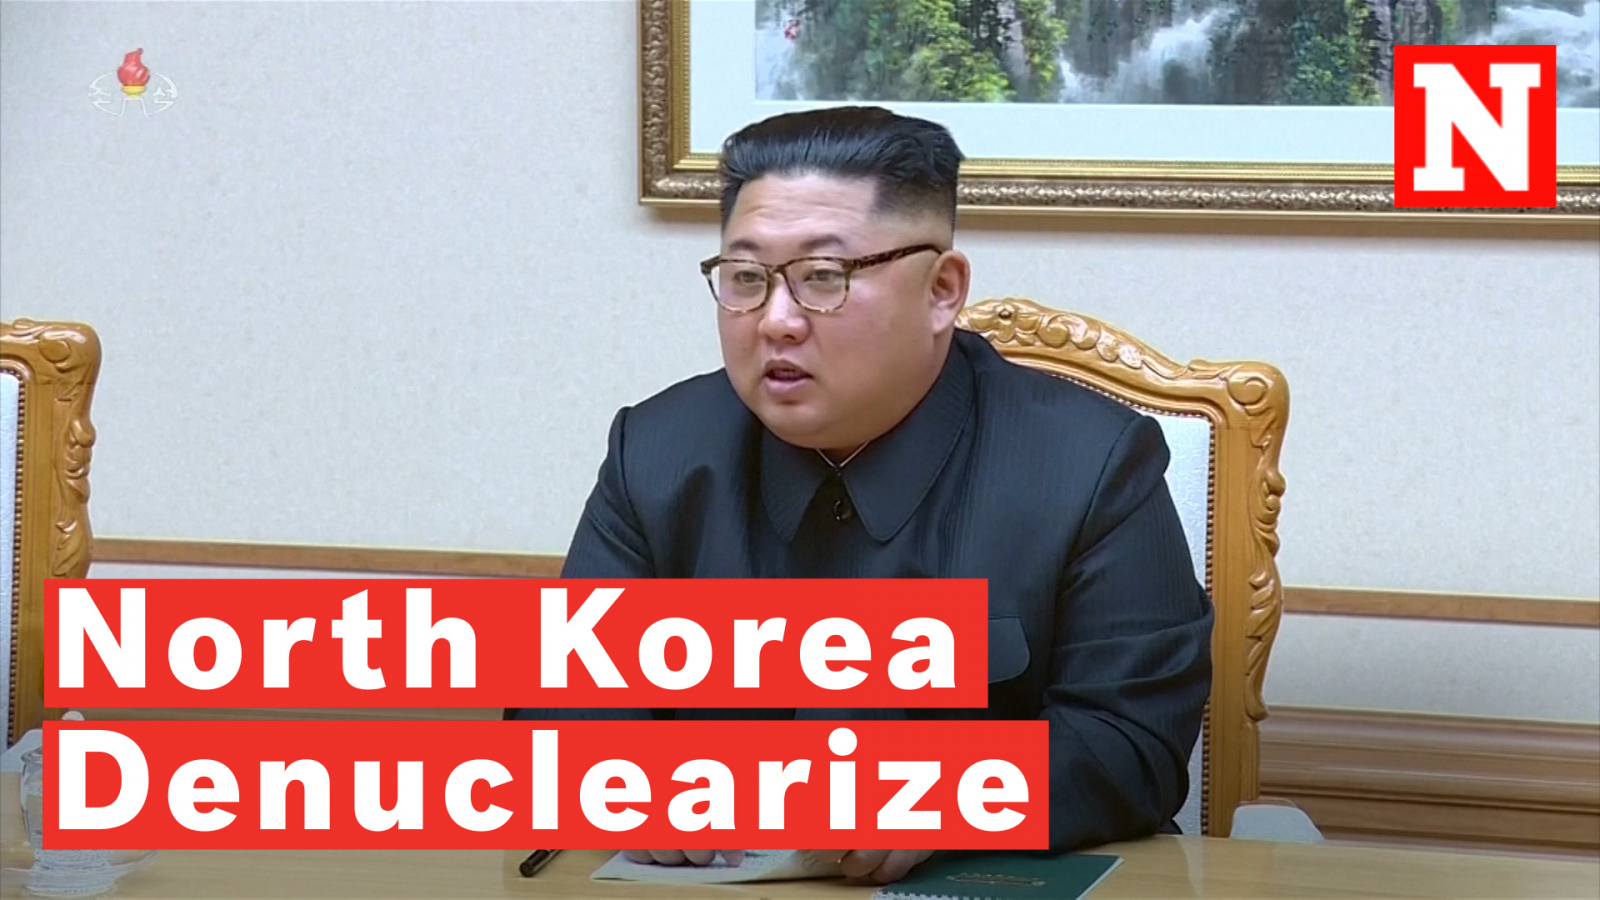 Kim Jong Un Wants To Denuclearize